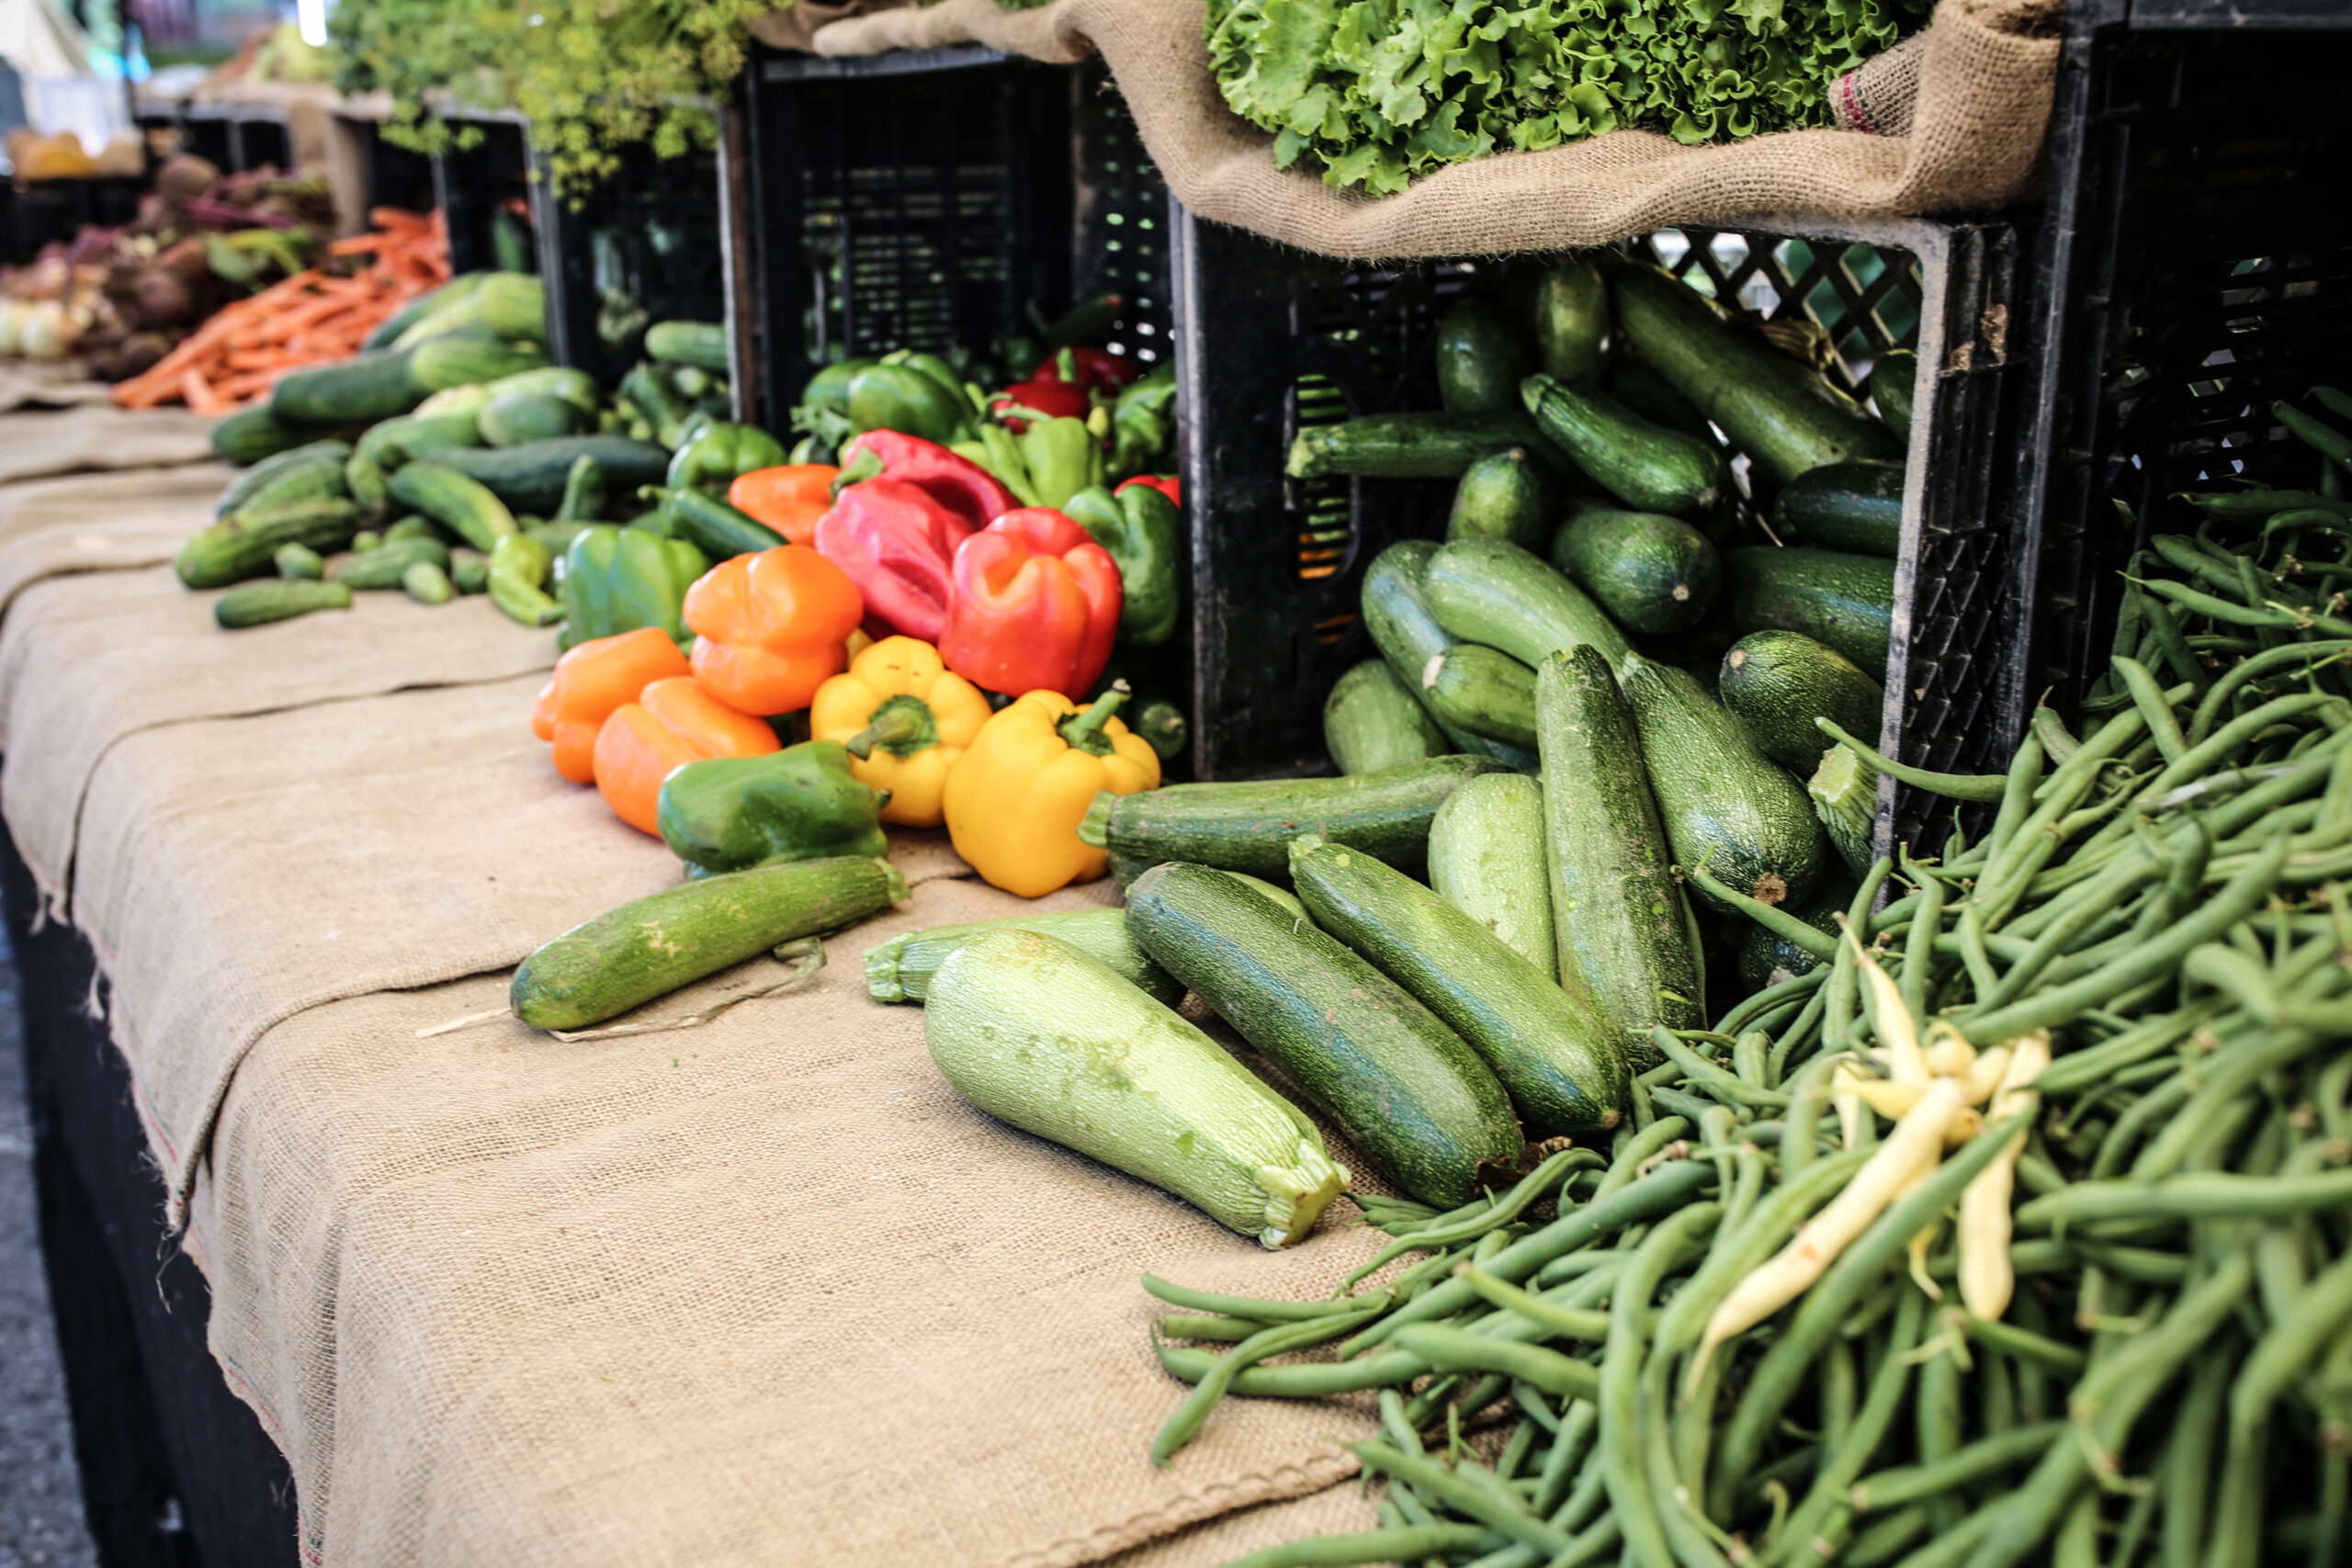 Colorado Proud is a program with the Colorado Department of Agriculture that promotes local farmers and products.